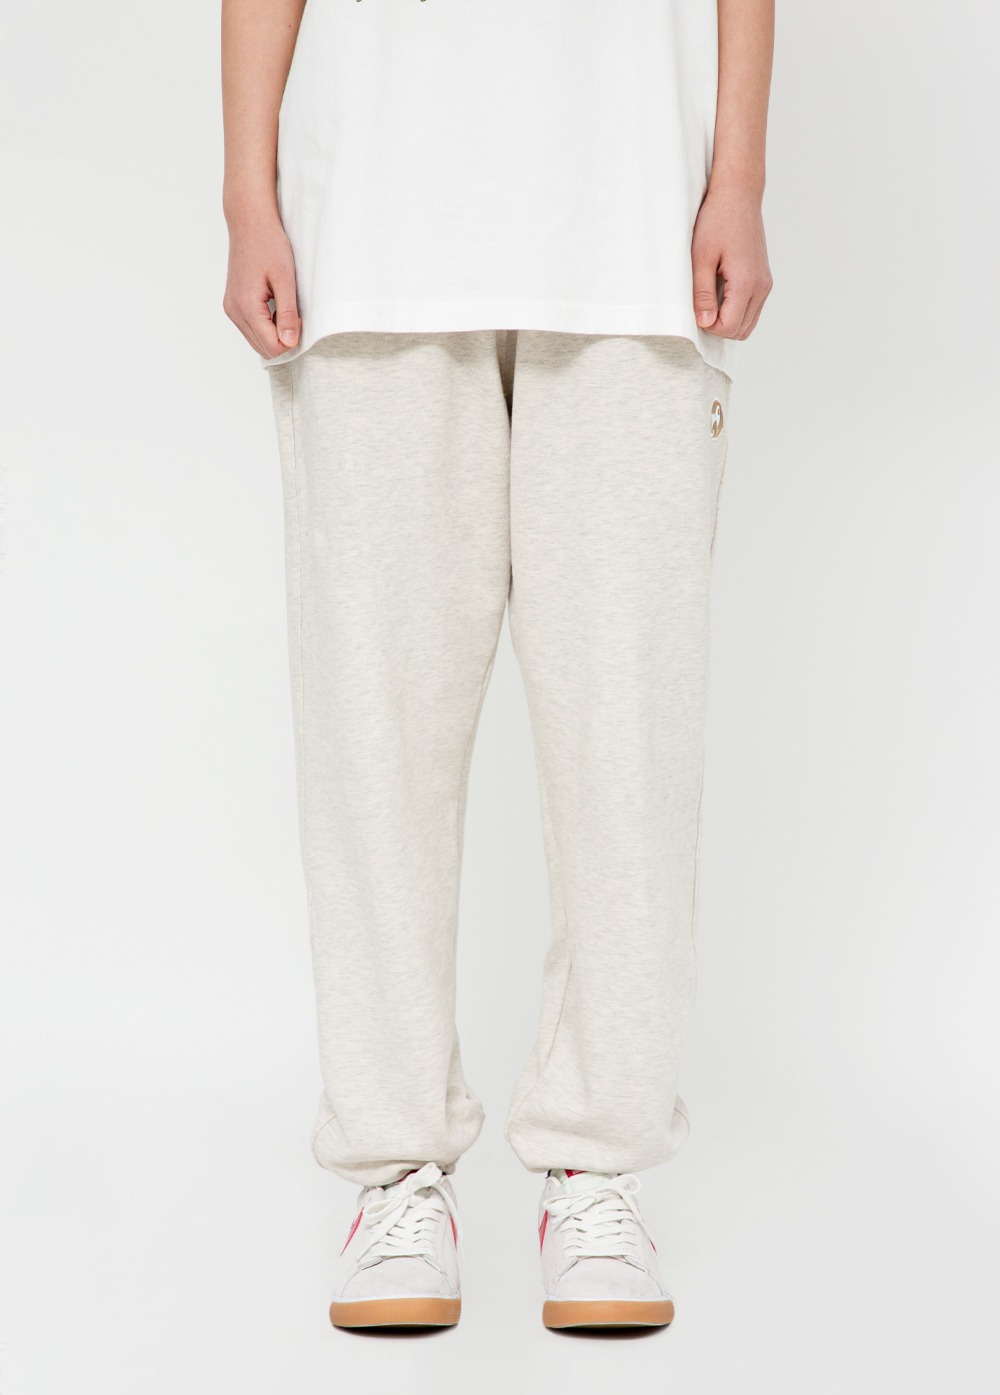 KANCO LOGO SWEATPANTS oatmeal